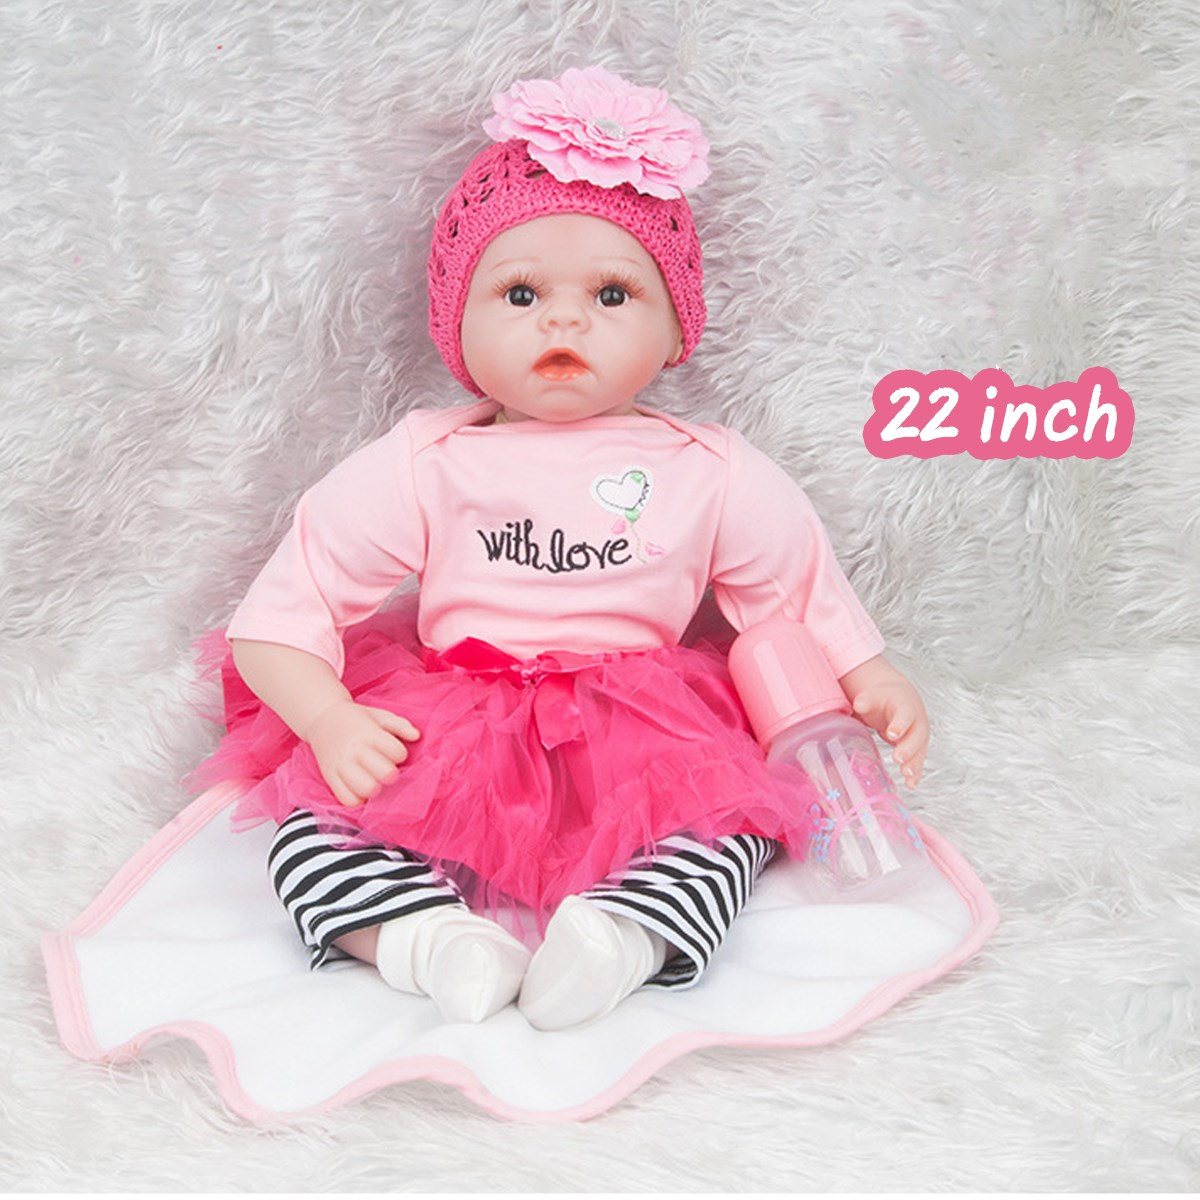 22inch 55cm  Silicone Reborn Kid Dolls Baby Lifelike Baby Doll Handmade Newborn Toy Babies Accompanying Toy Birthday Gift22inch 55cm  Silicone Reborn Kid Dolls Baby Lifelike Baby Doll Handmade Newborn Toy Babies Accompanying Toy Birthday Gift